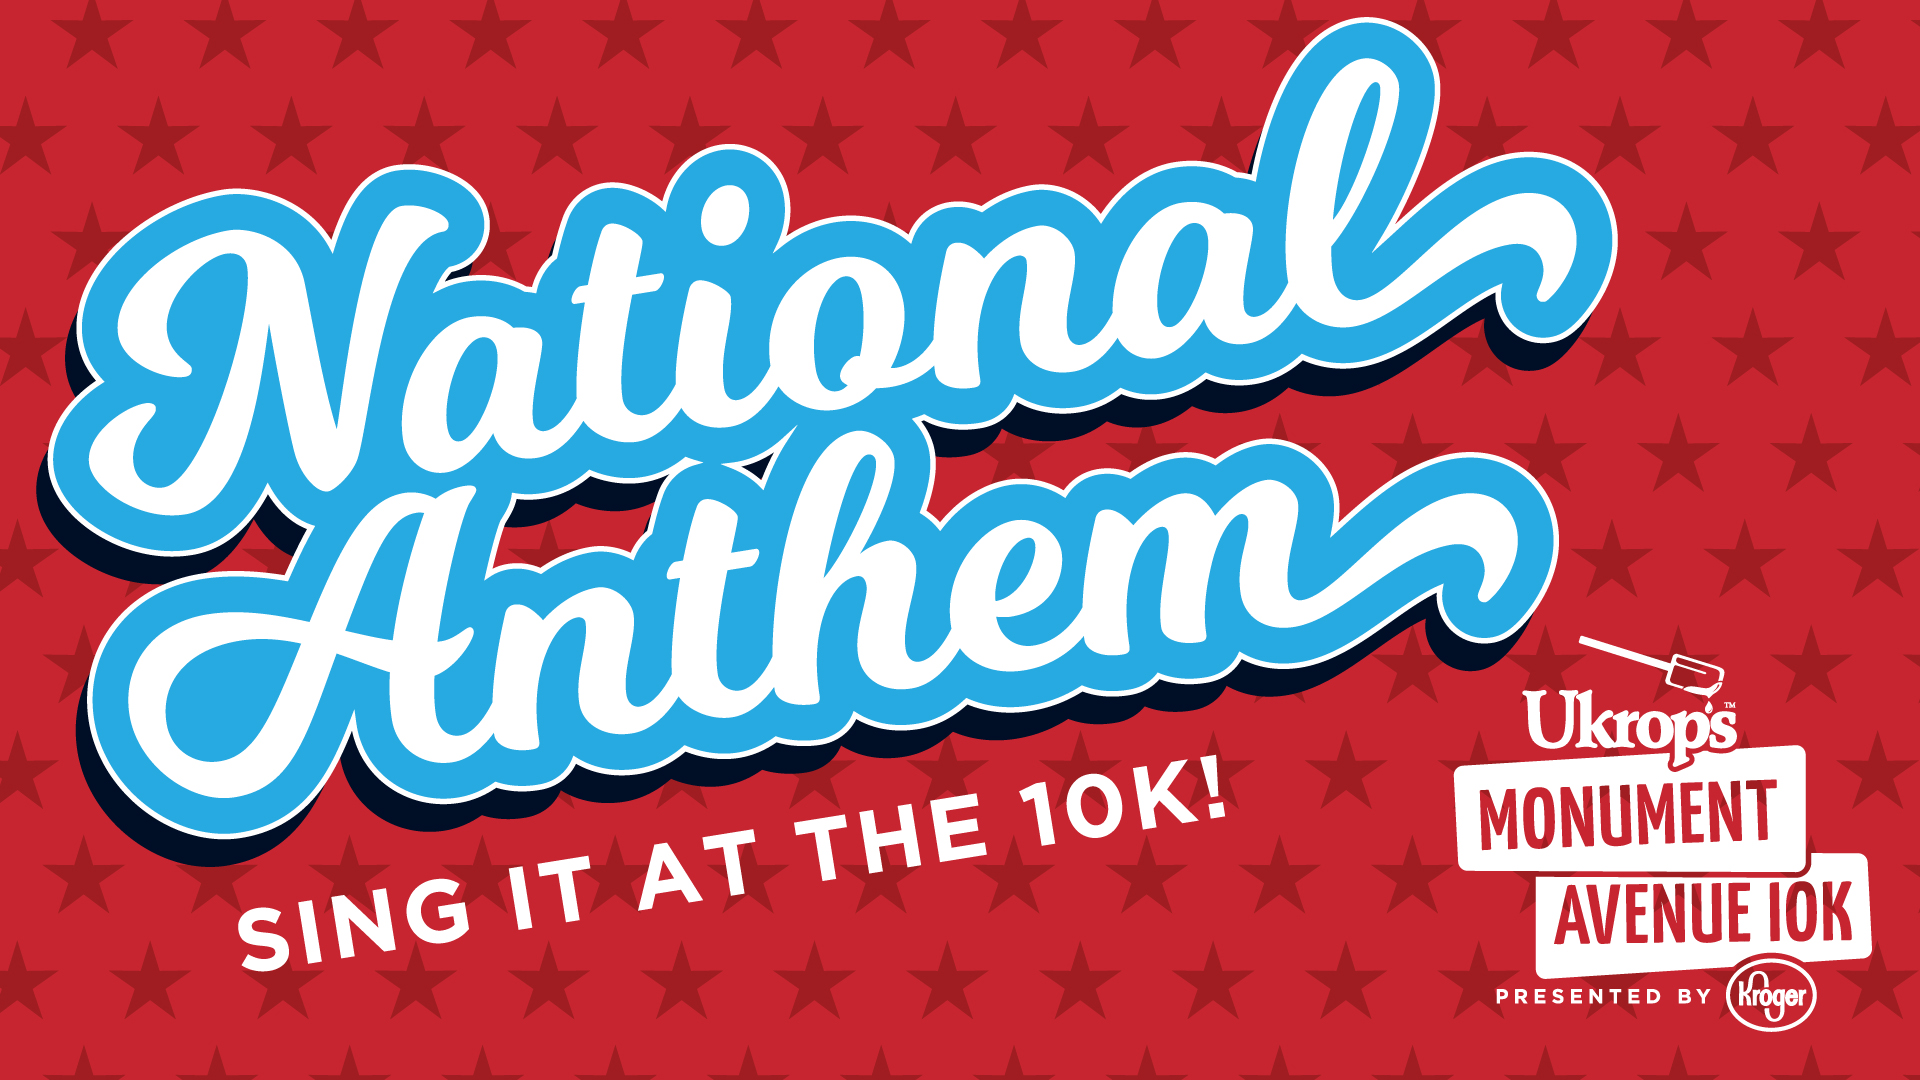 Sing the National Anthem at Ukrop's Monument Avenue 10k